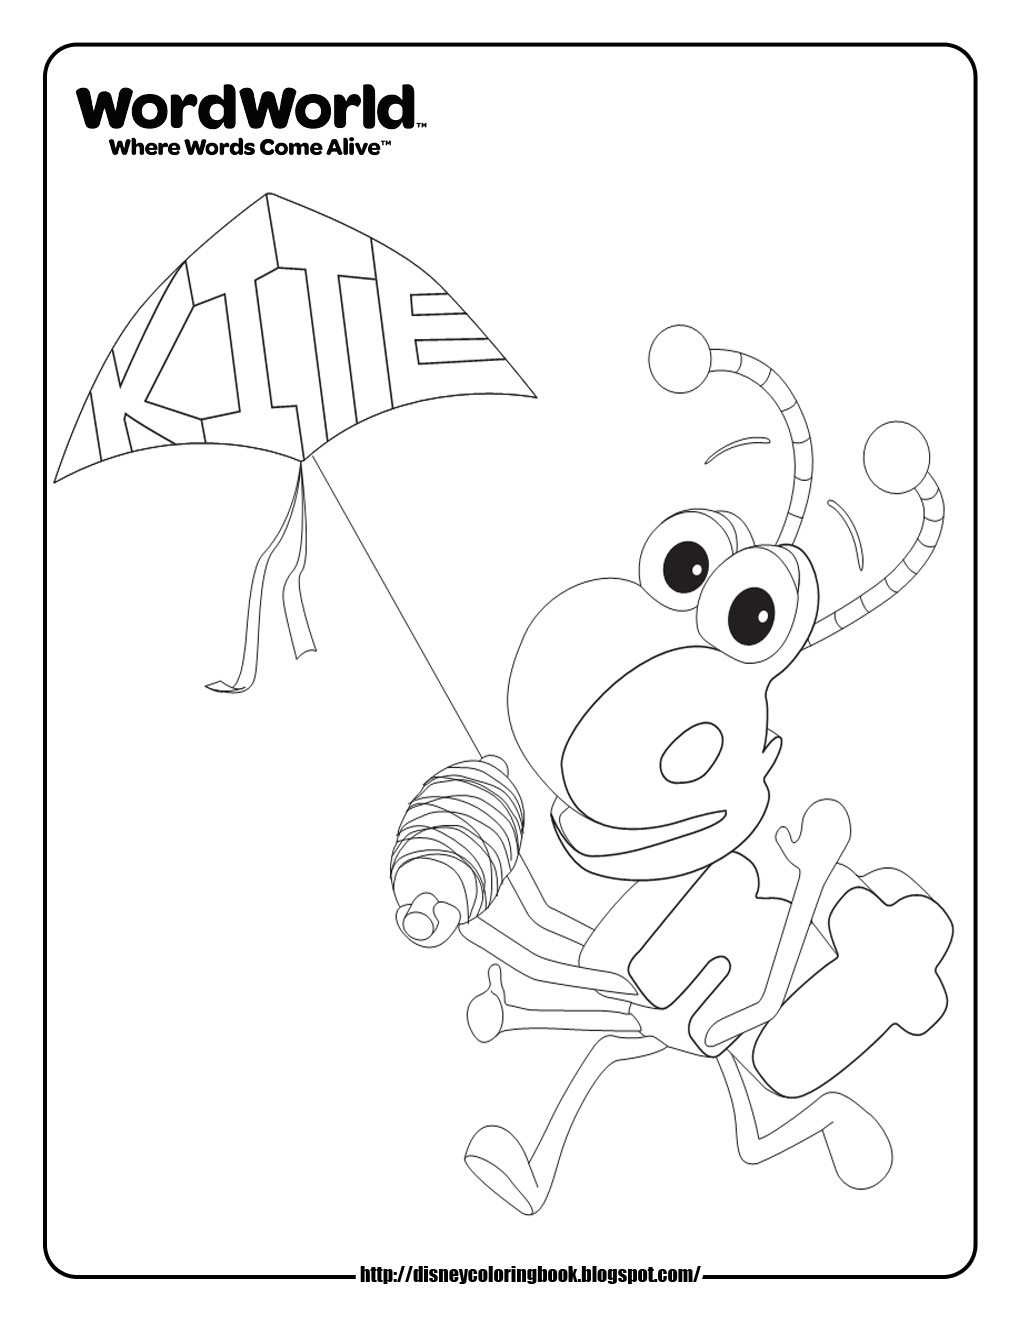 word world coloring pages # 41